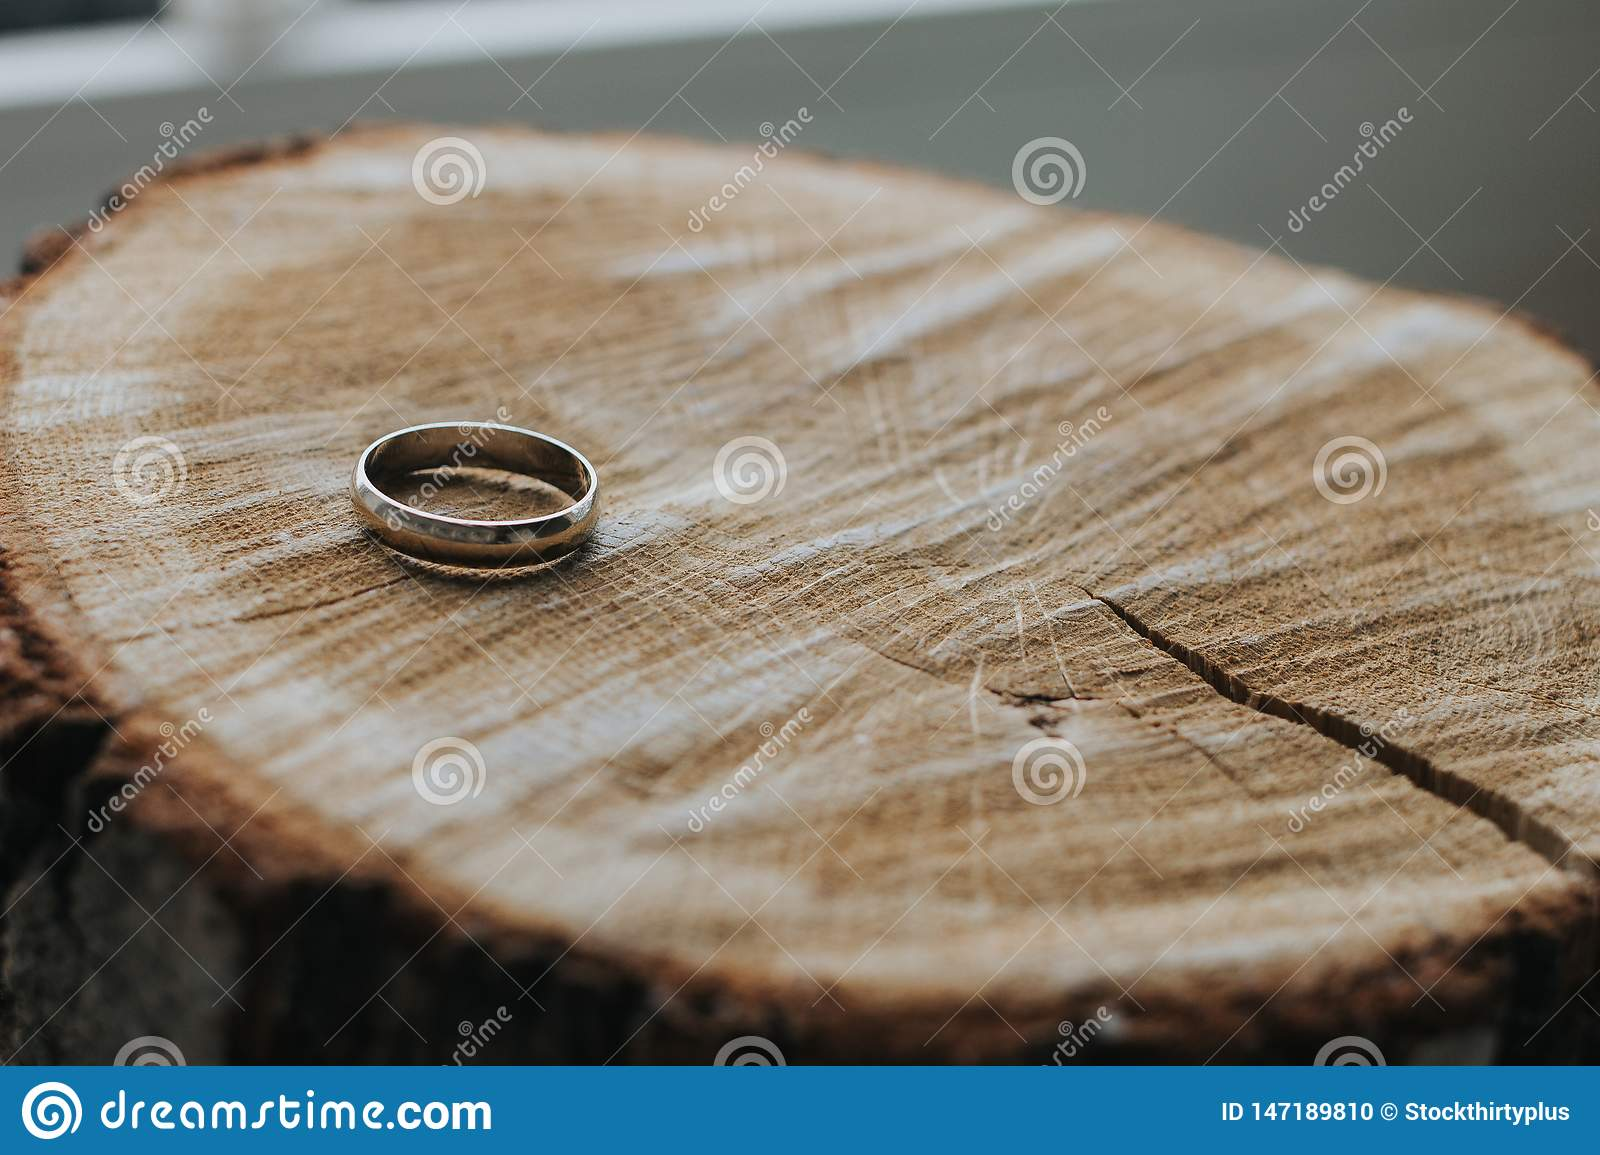 One gold wedding ring lying on the wooden stump cut. Close-up. Focus on the ring, the background is blurred